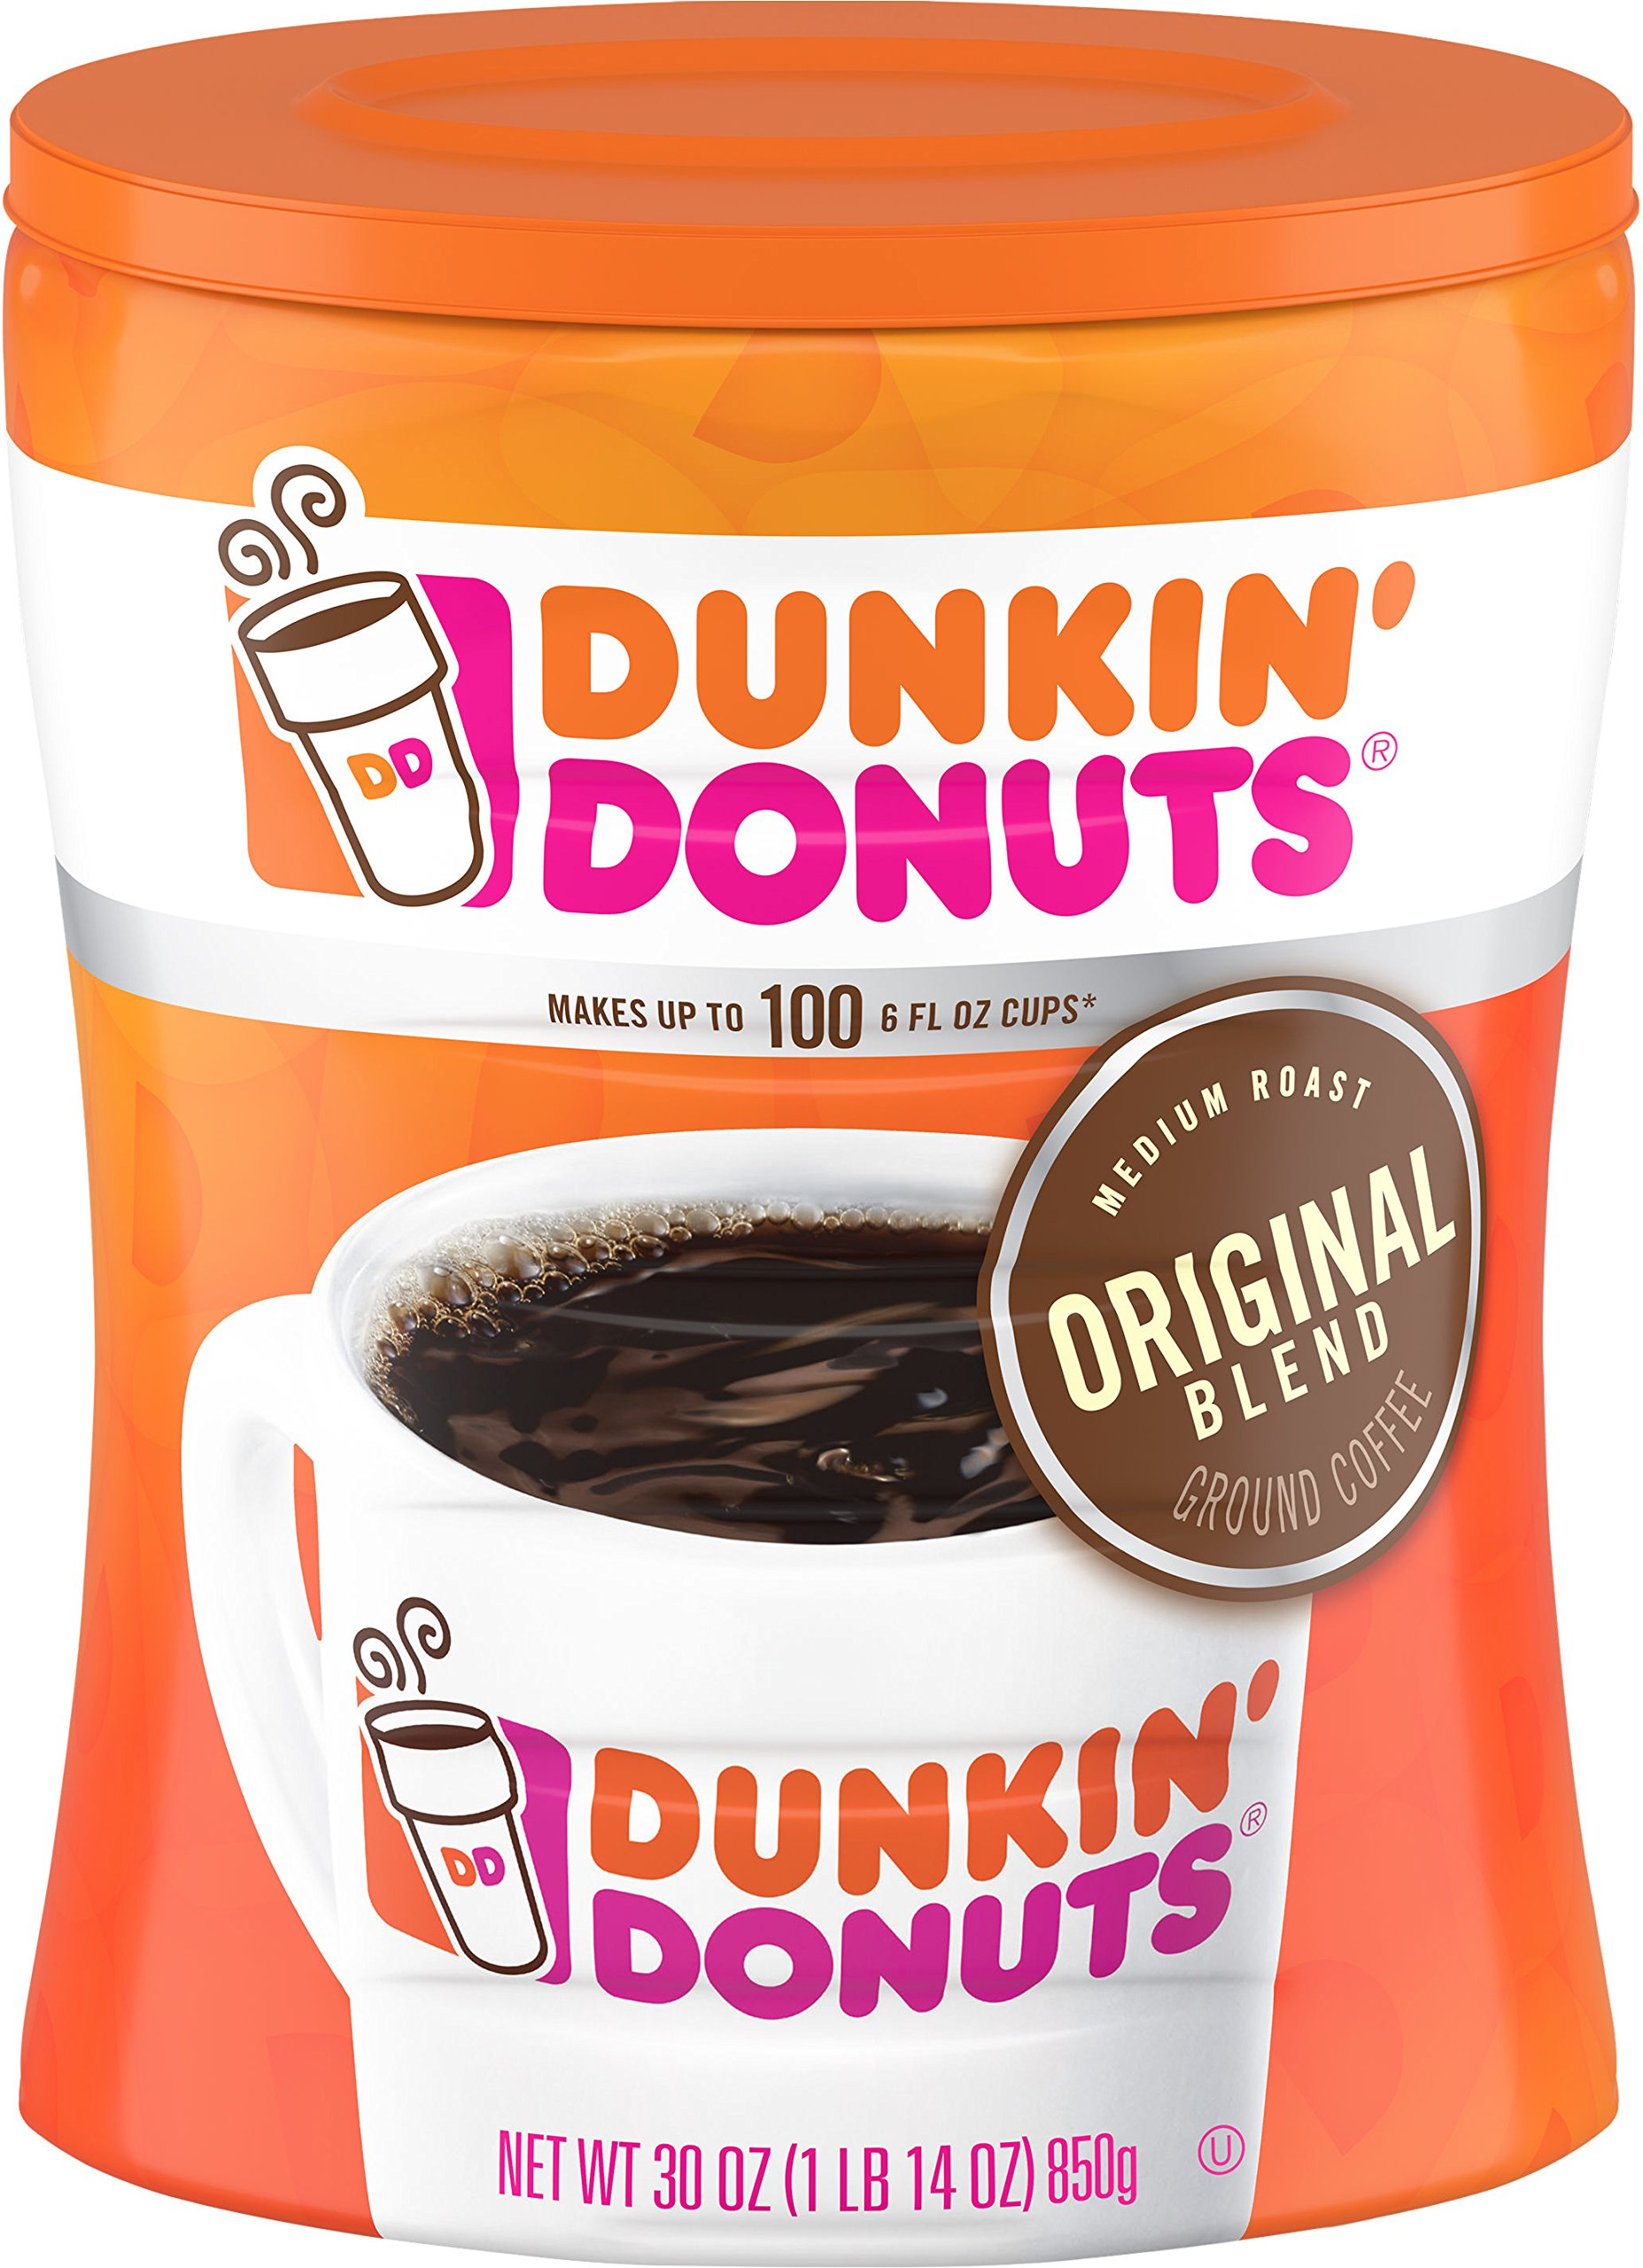 Dunkin' Donuts 6-Pack Original Blend Ground Coffee, Medium Roast, 30-Ounce Canisters by Dunkin' Donuts (Image #2)